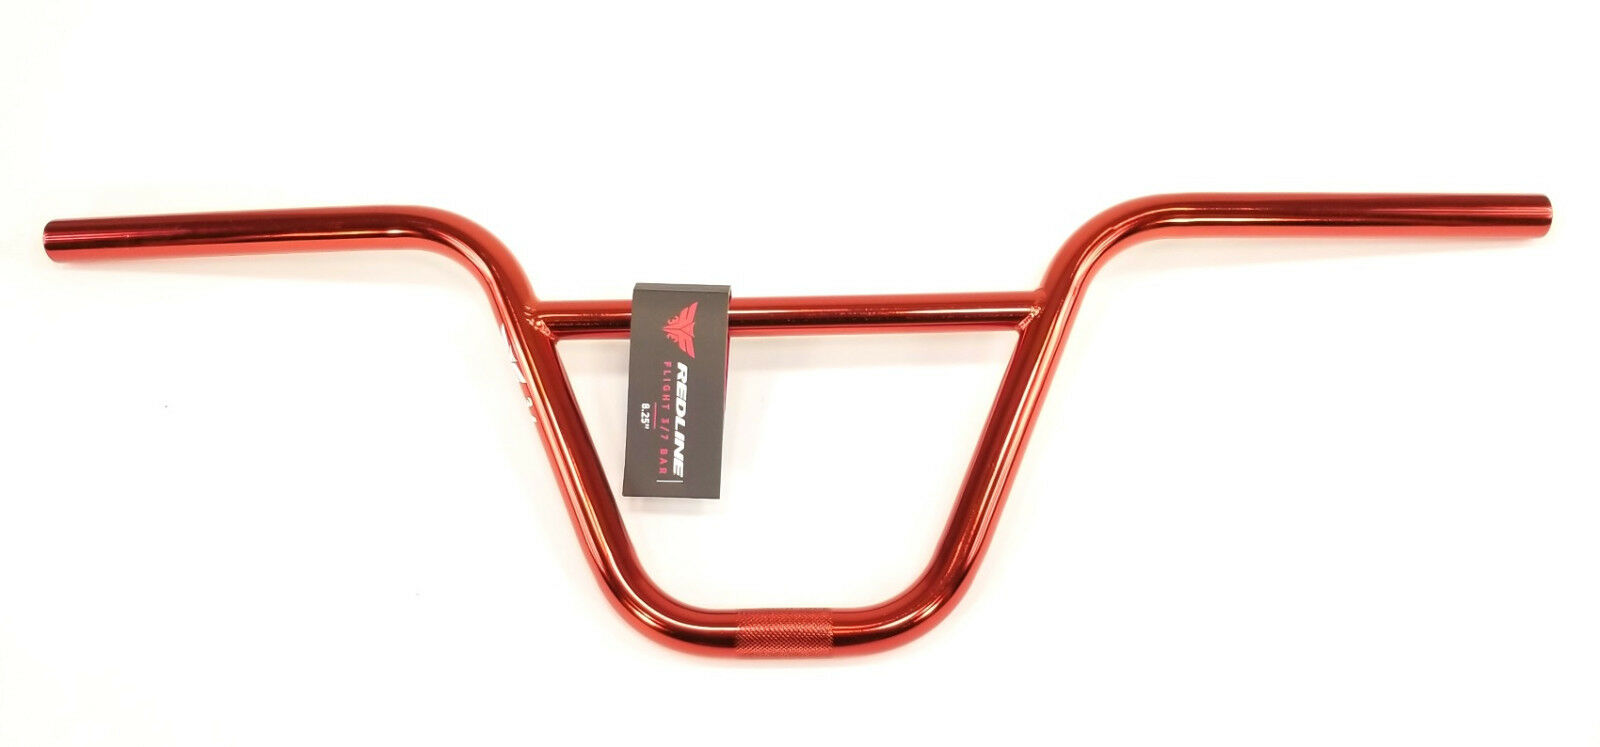 ROTLINE Flight 3/7 Bar CrMo BMX Bike Handlebar ROT 28